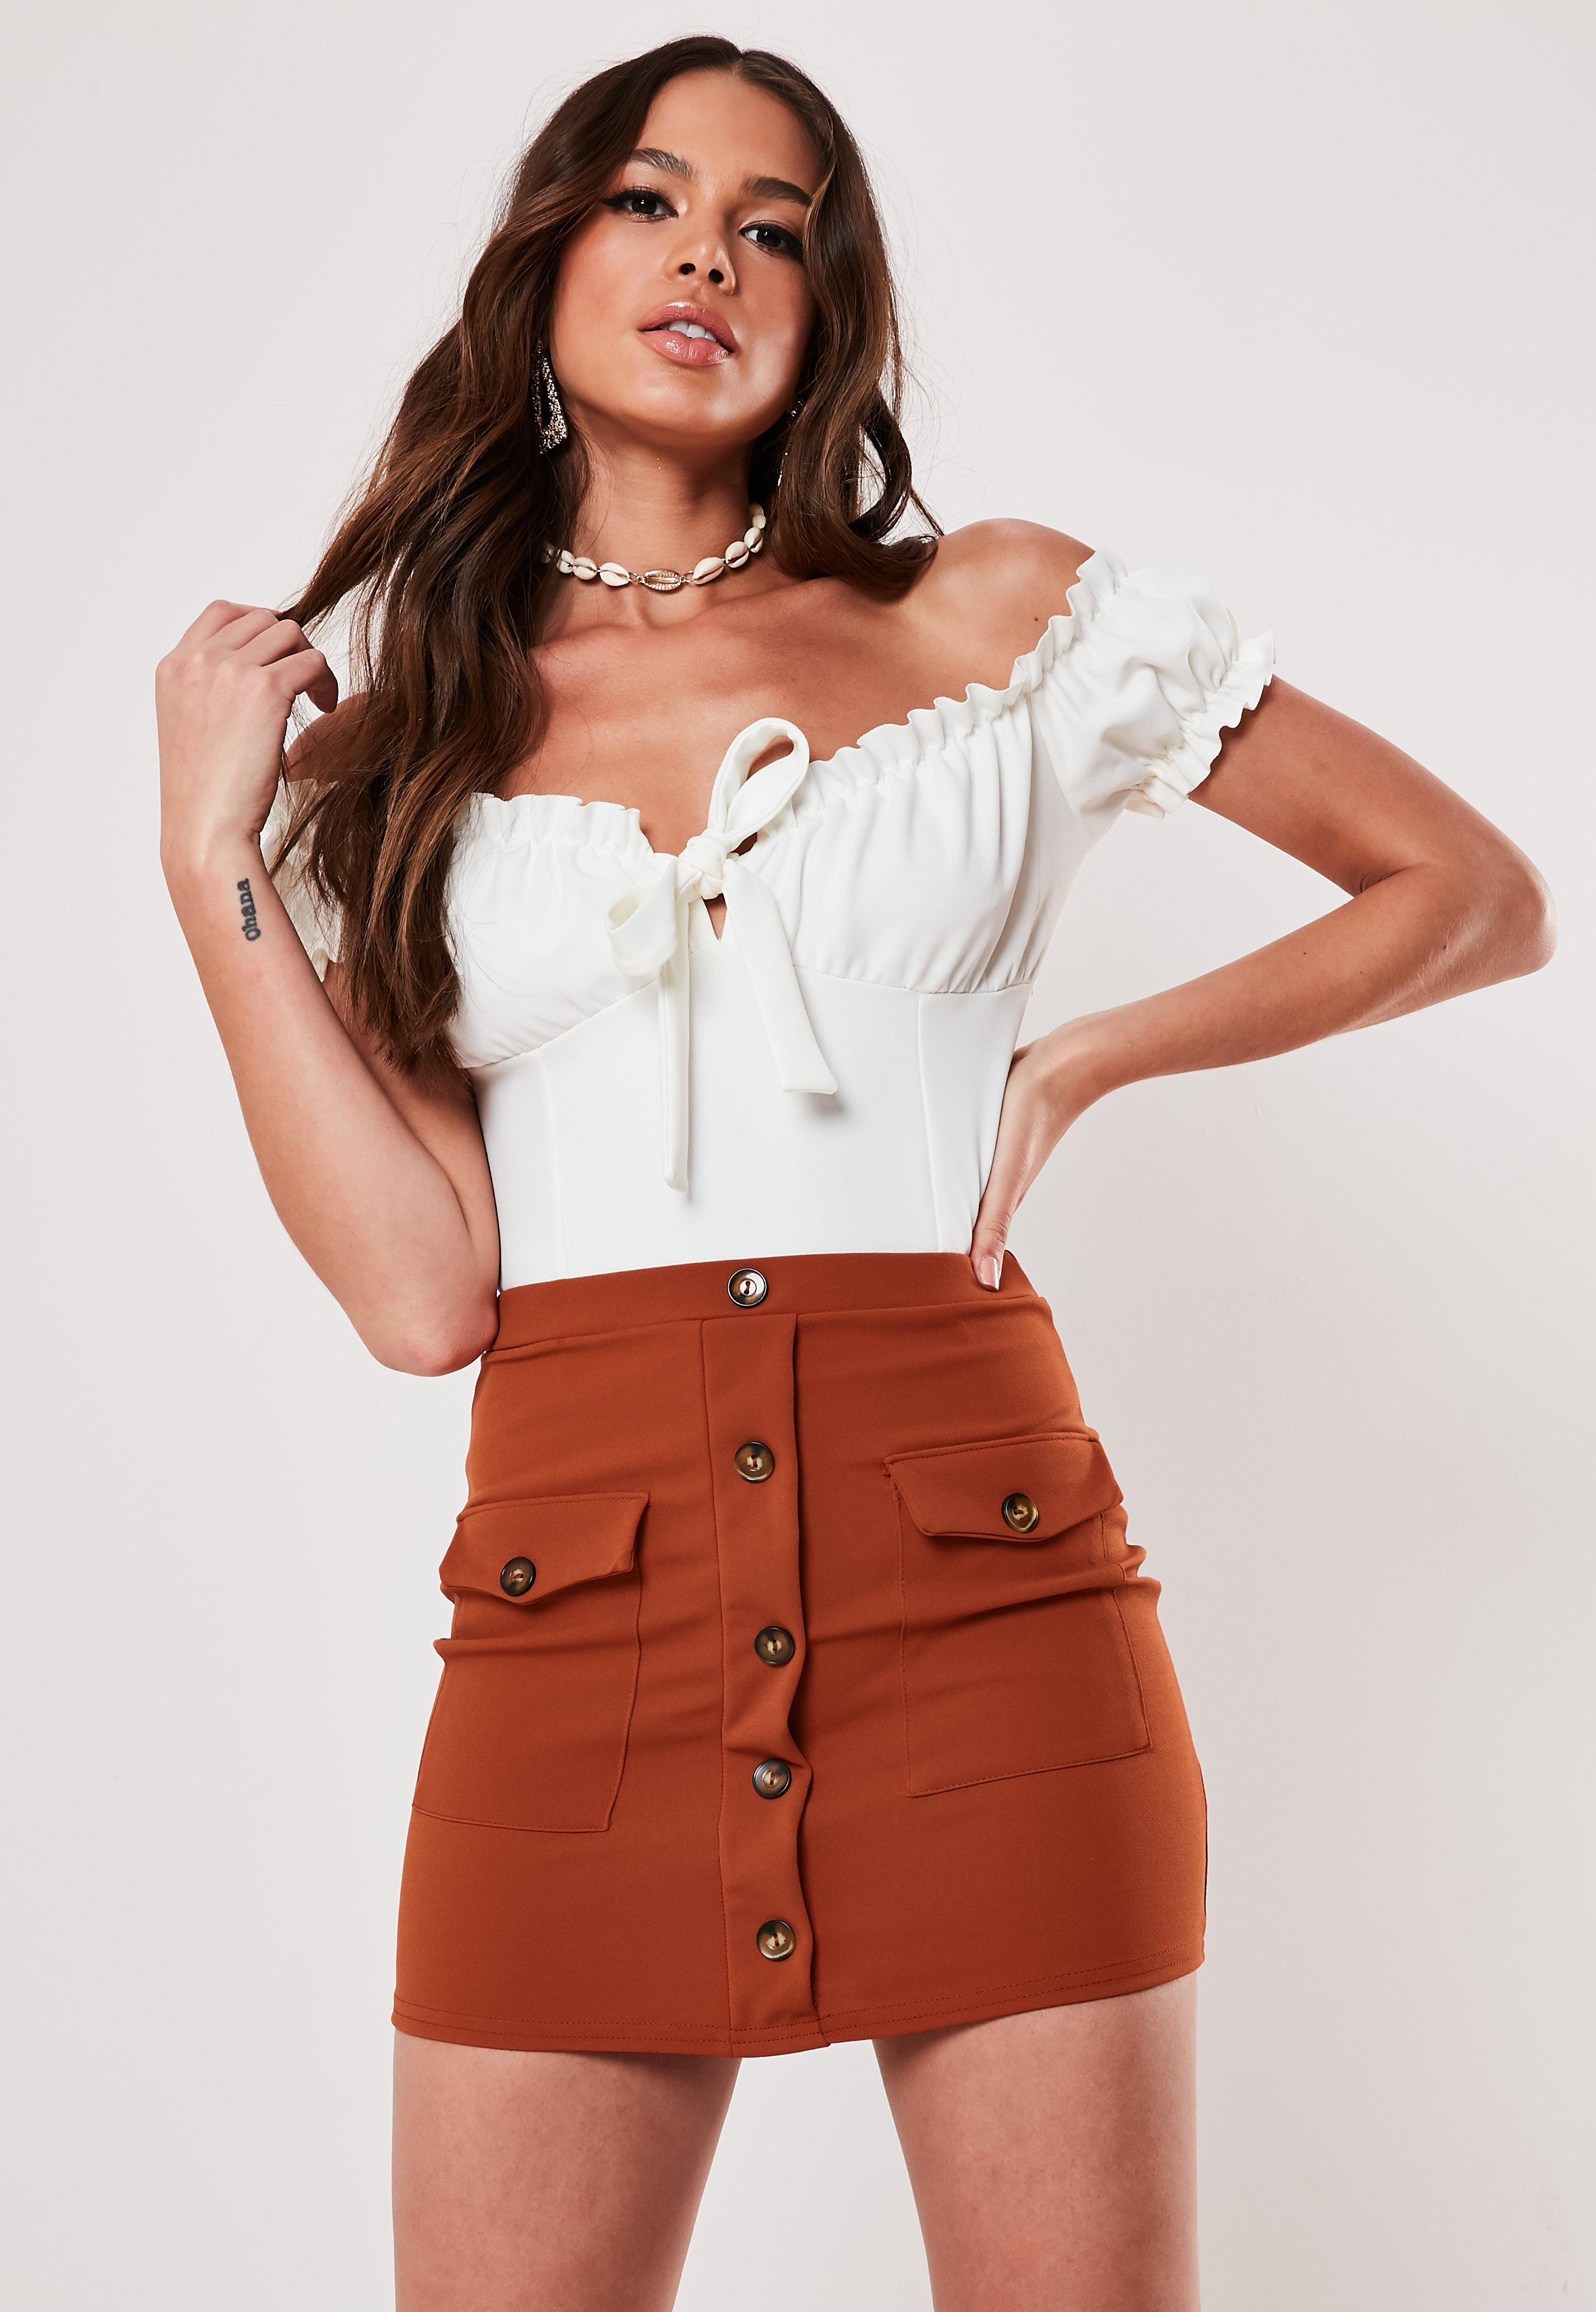 c6e1086c32ee New Clothing - New In Women's Fashion | Missguided